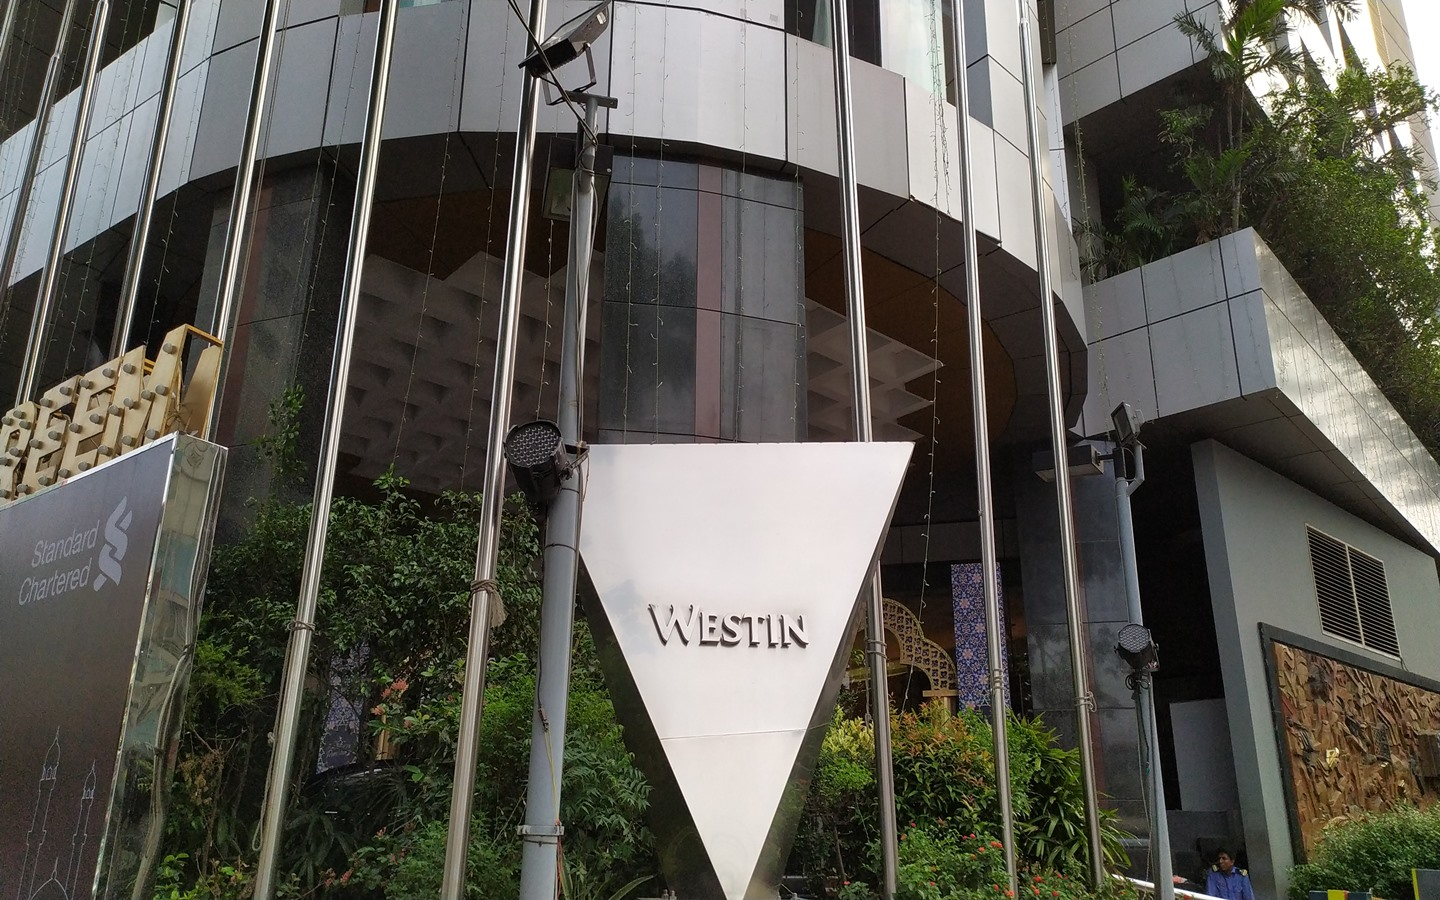 Outside view of westin